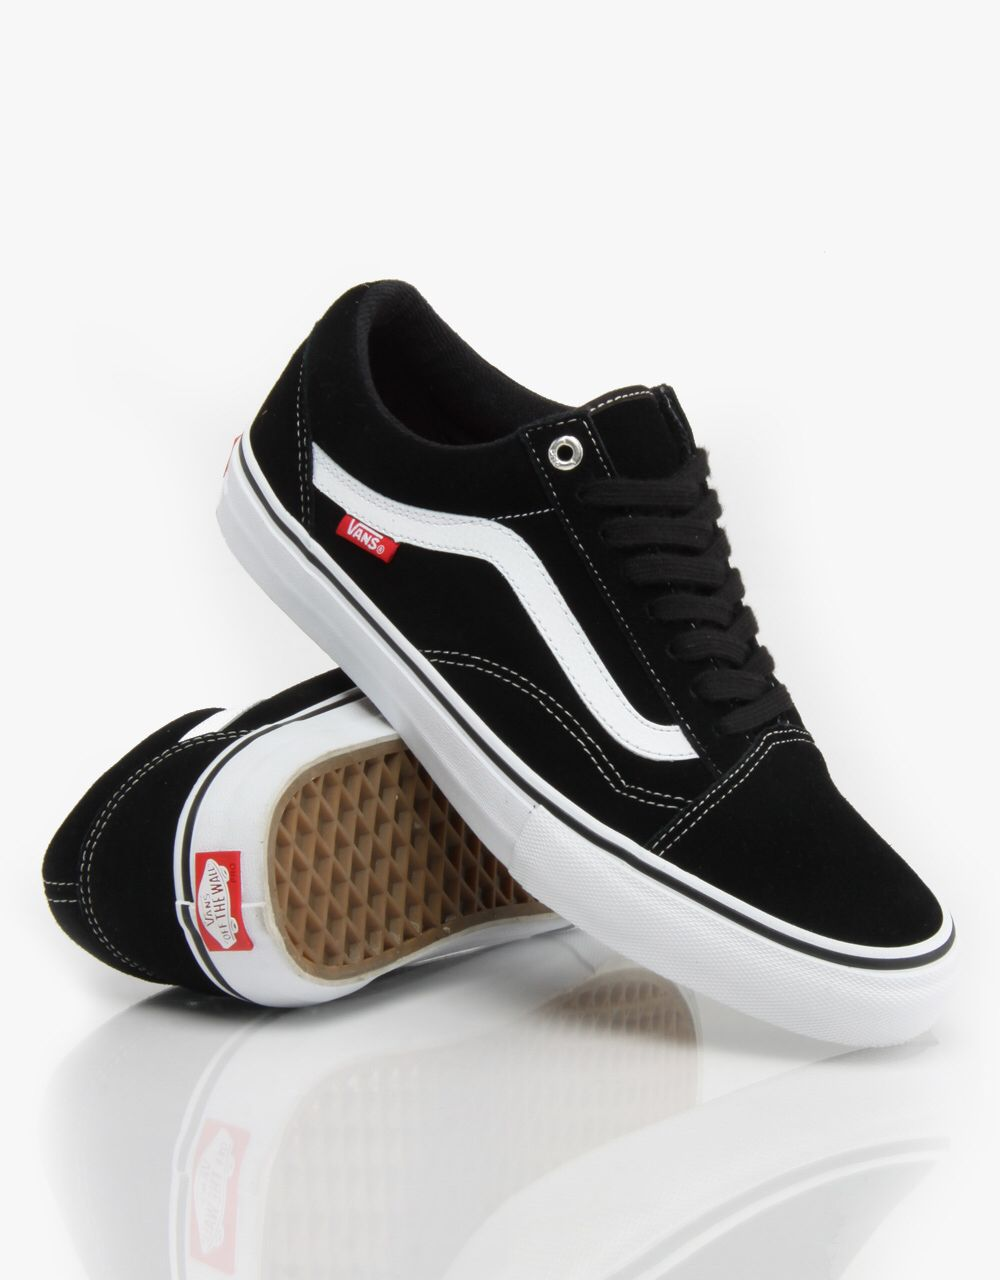 Vans old skool pro with black laces  f1a852d73